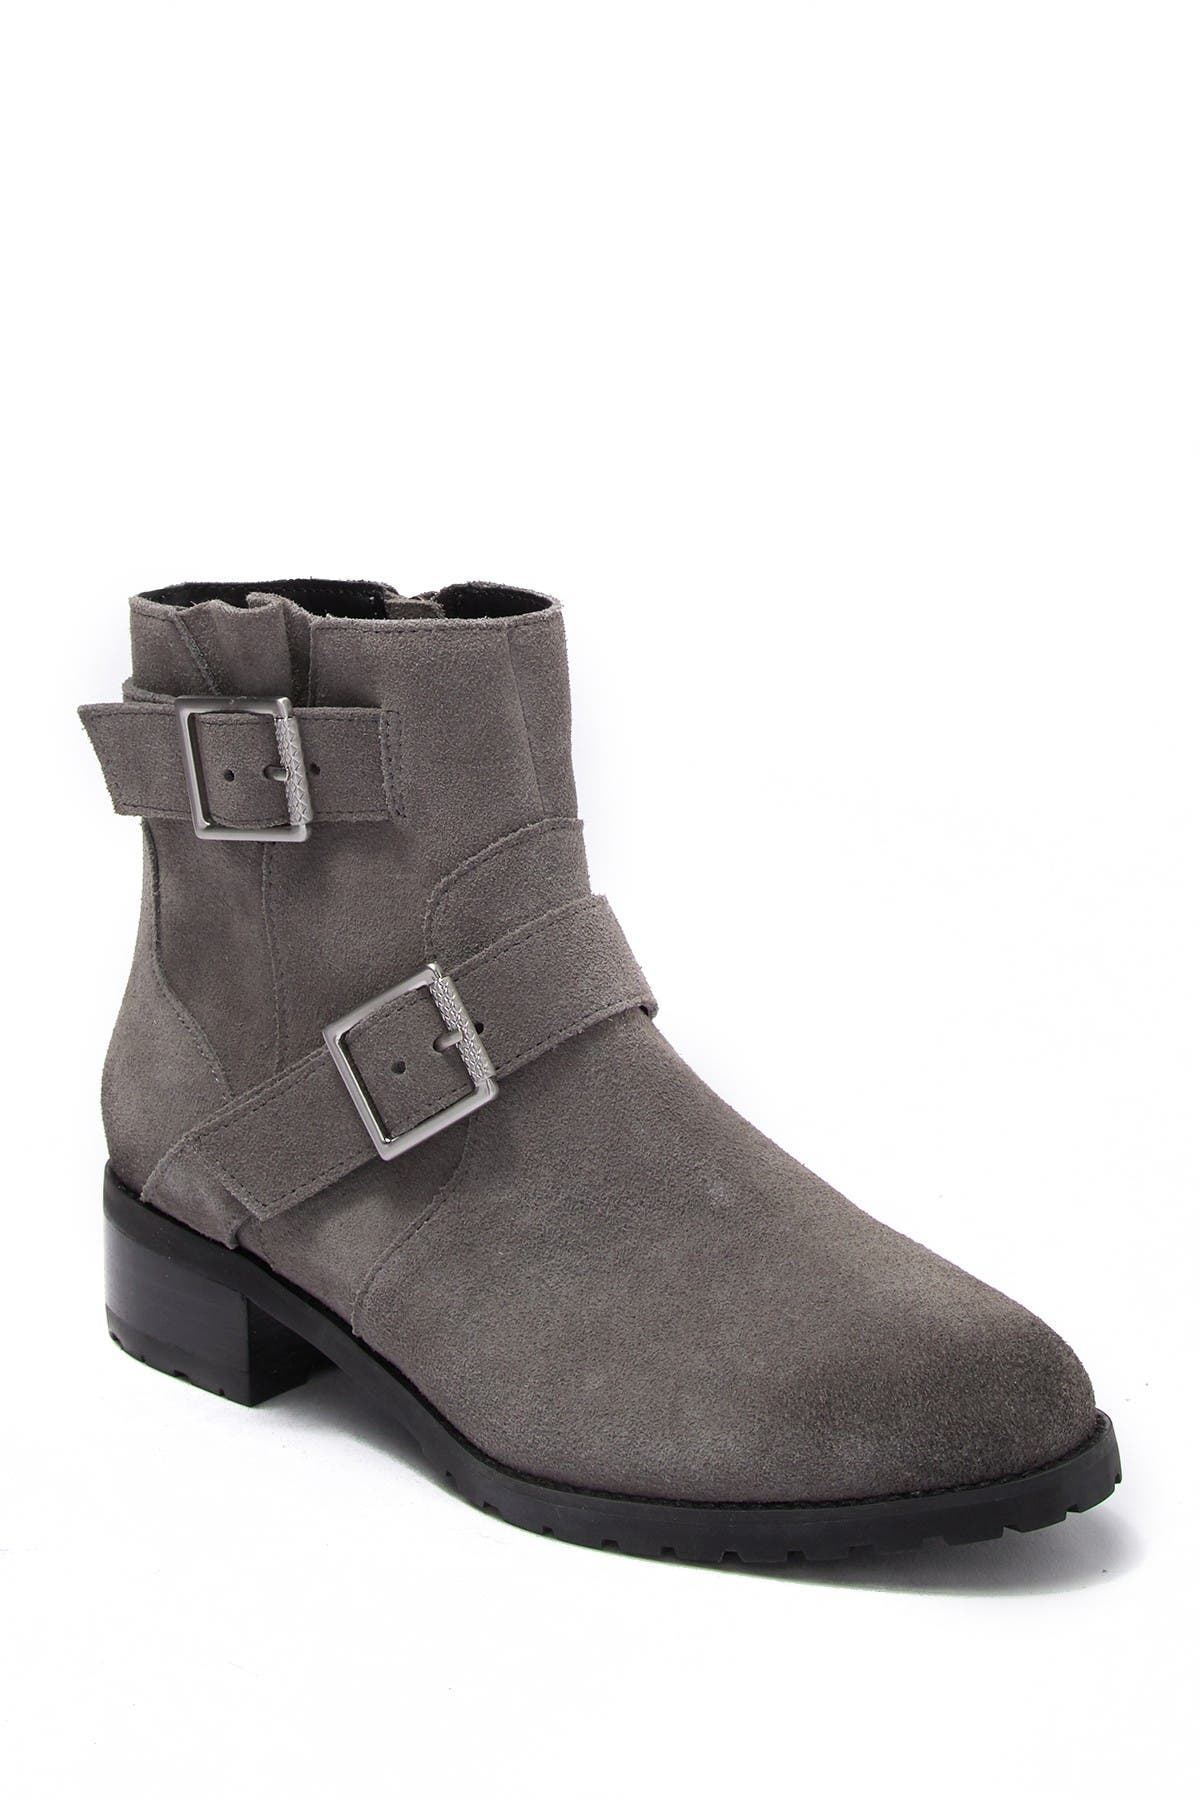 Odette Water-Resistant Suede Ankle Boot